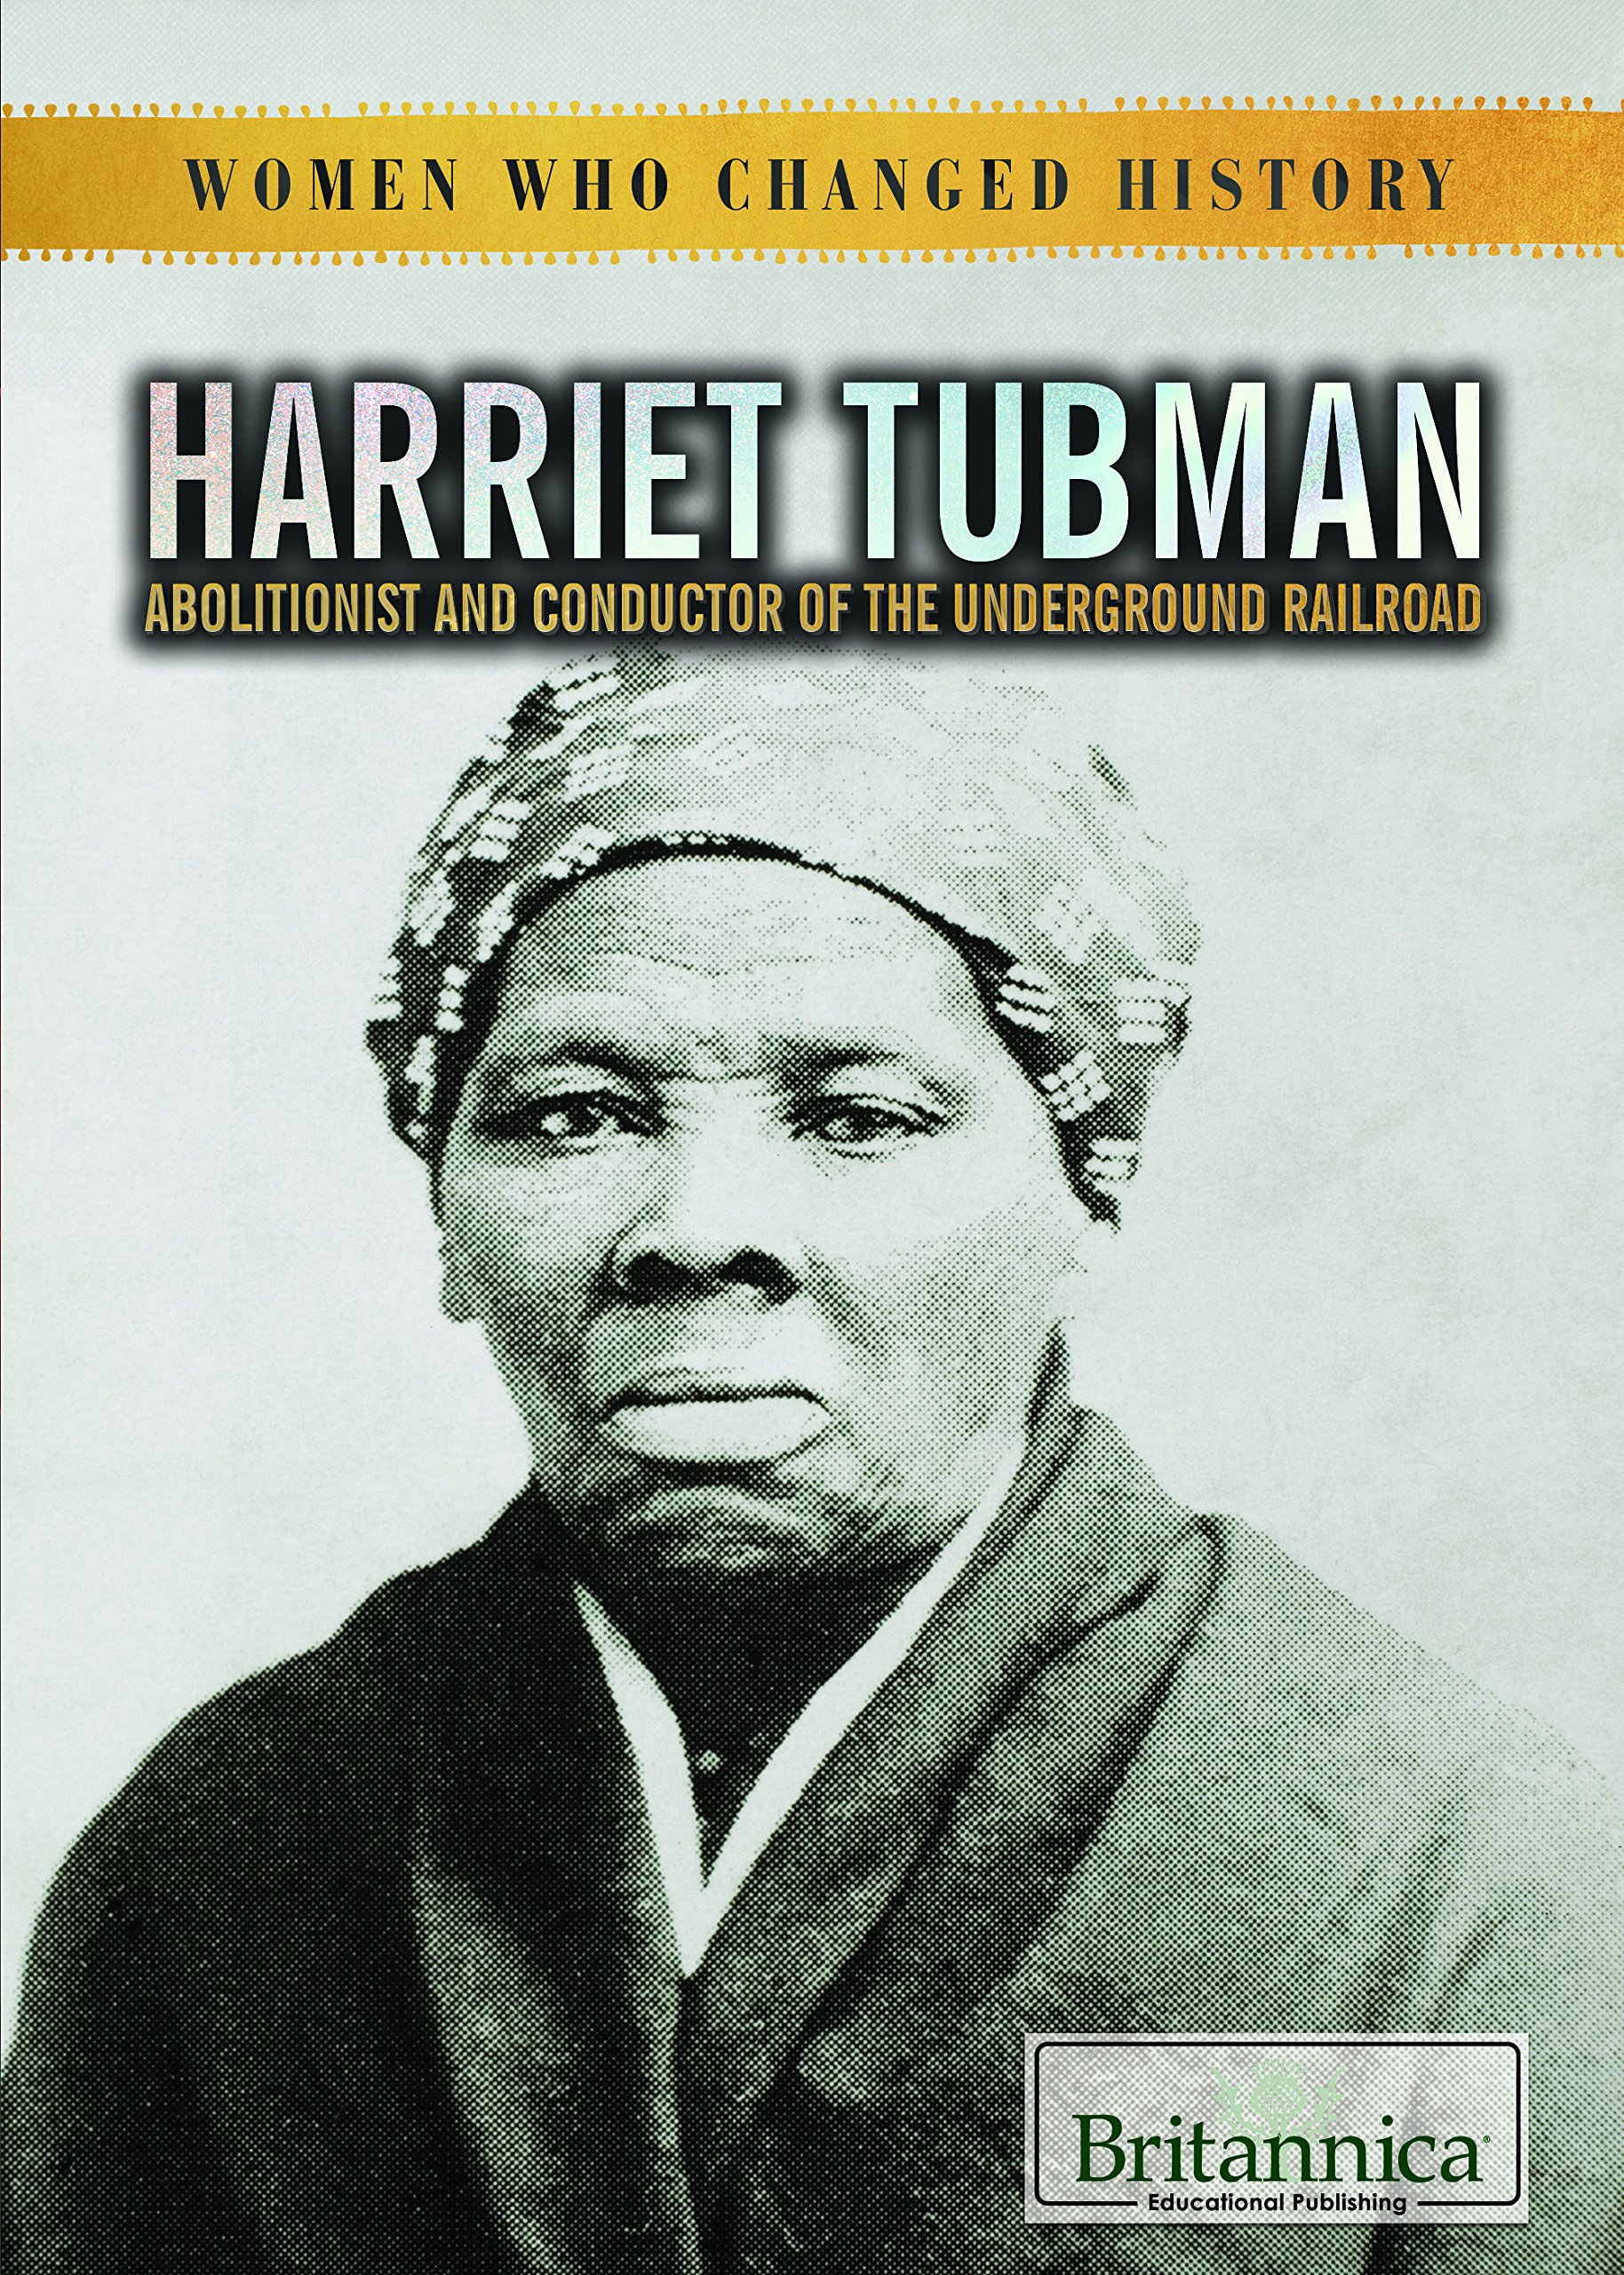 Harriet Tubman: Abolitionist and Conductor of the Underground Railroad (Women Who Changed History)